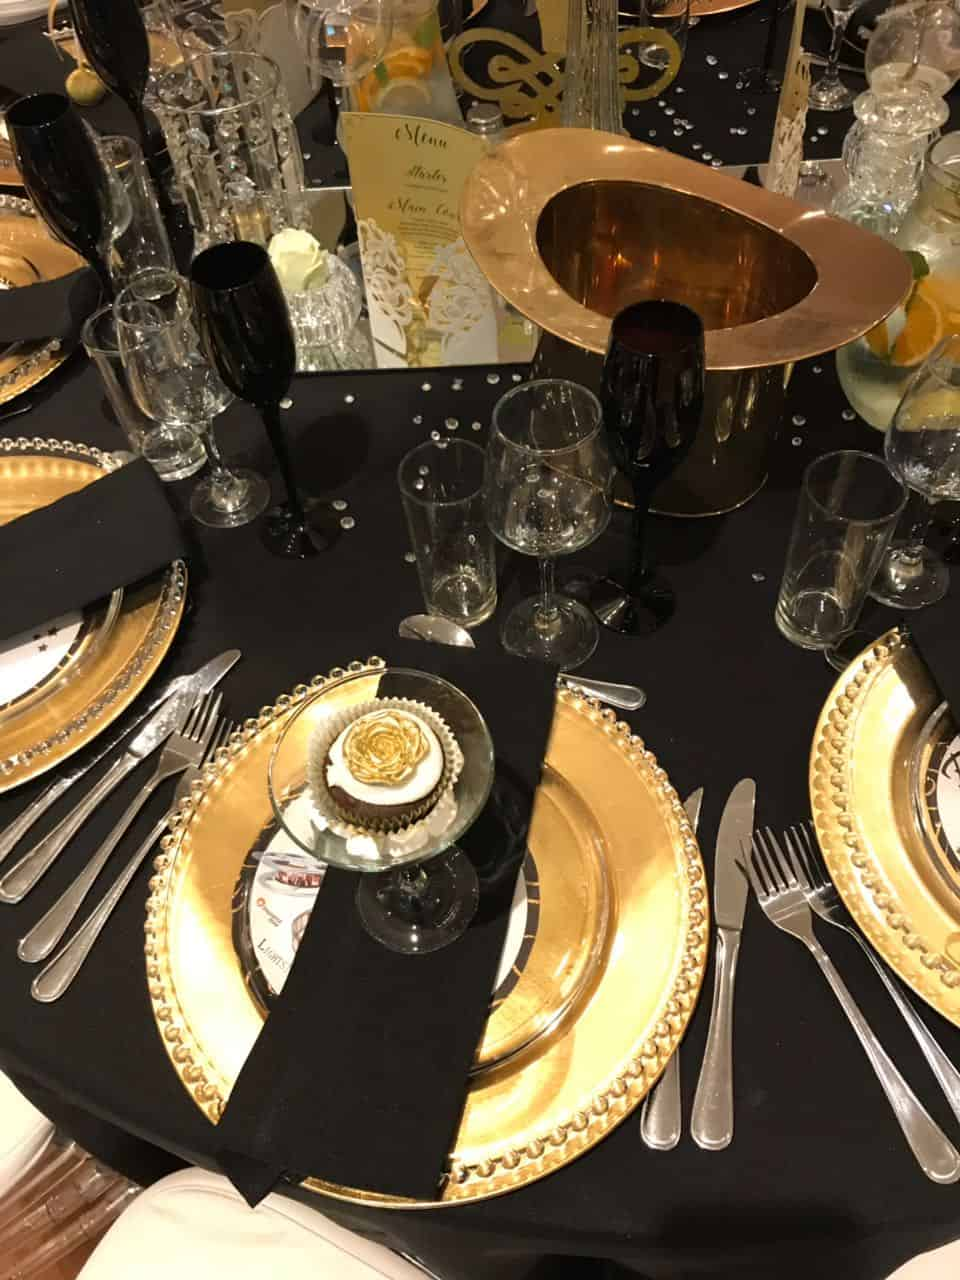 gold underplates with black napkins